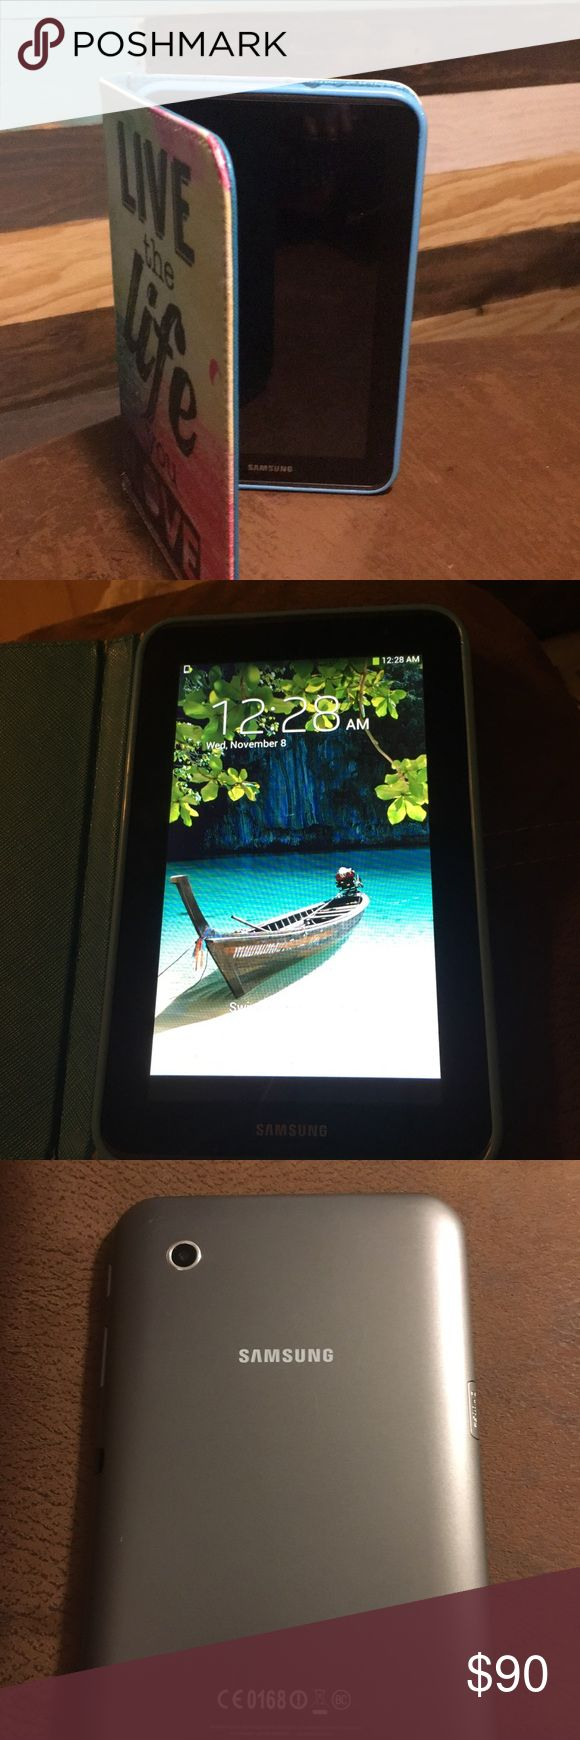 "Samsung S2 7"" tablet. EUC Samsung S2 7"" tablet. EUC. Very minor scratches. Has been kept in Case. Excellent working condition. Will take reasonable offer. Other"